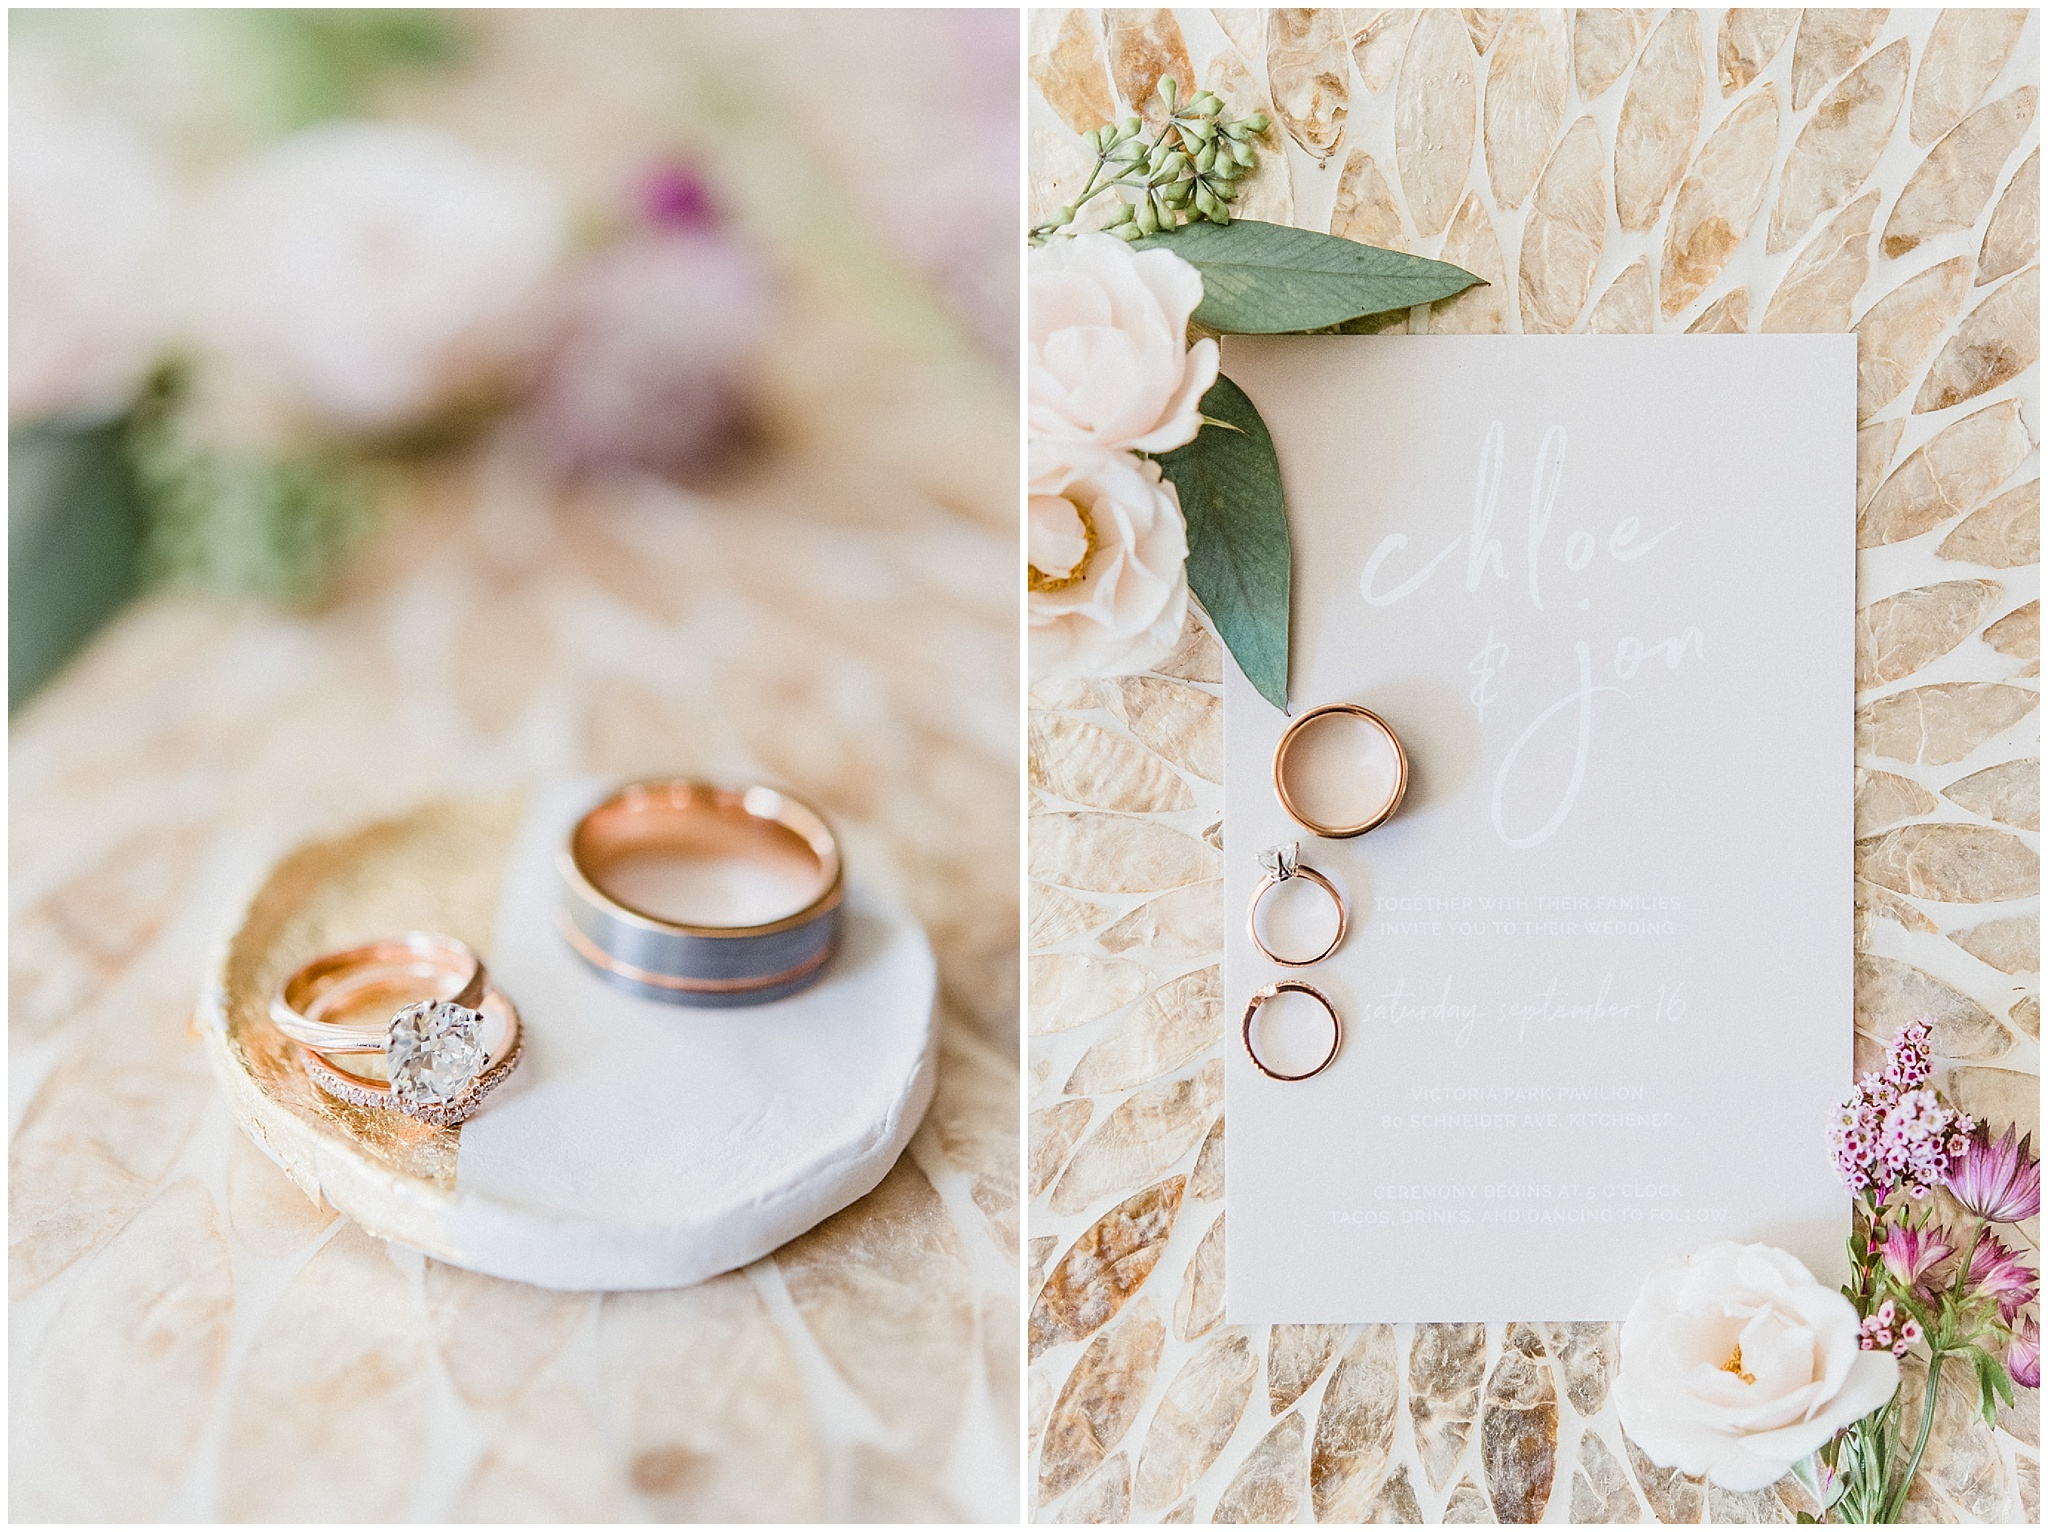 Chic, laid back wedding at Victoria Park Pavilion photographed by Jenn Kavanagh Photography